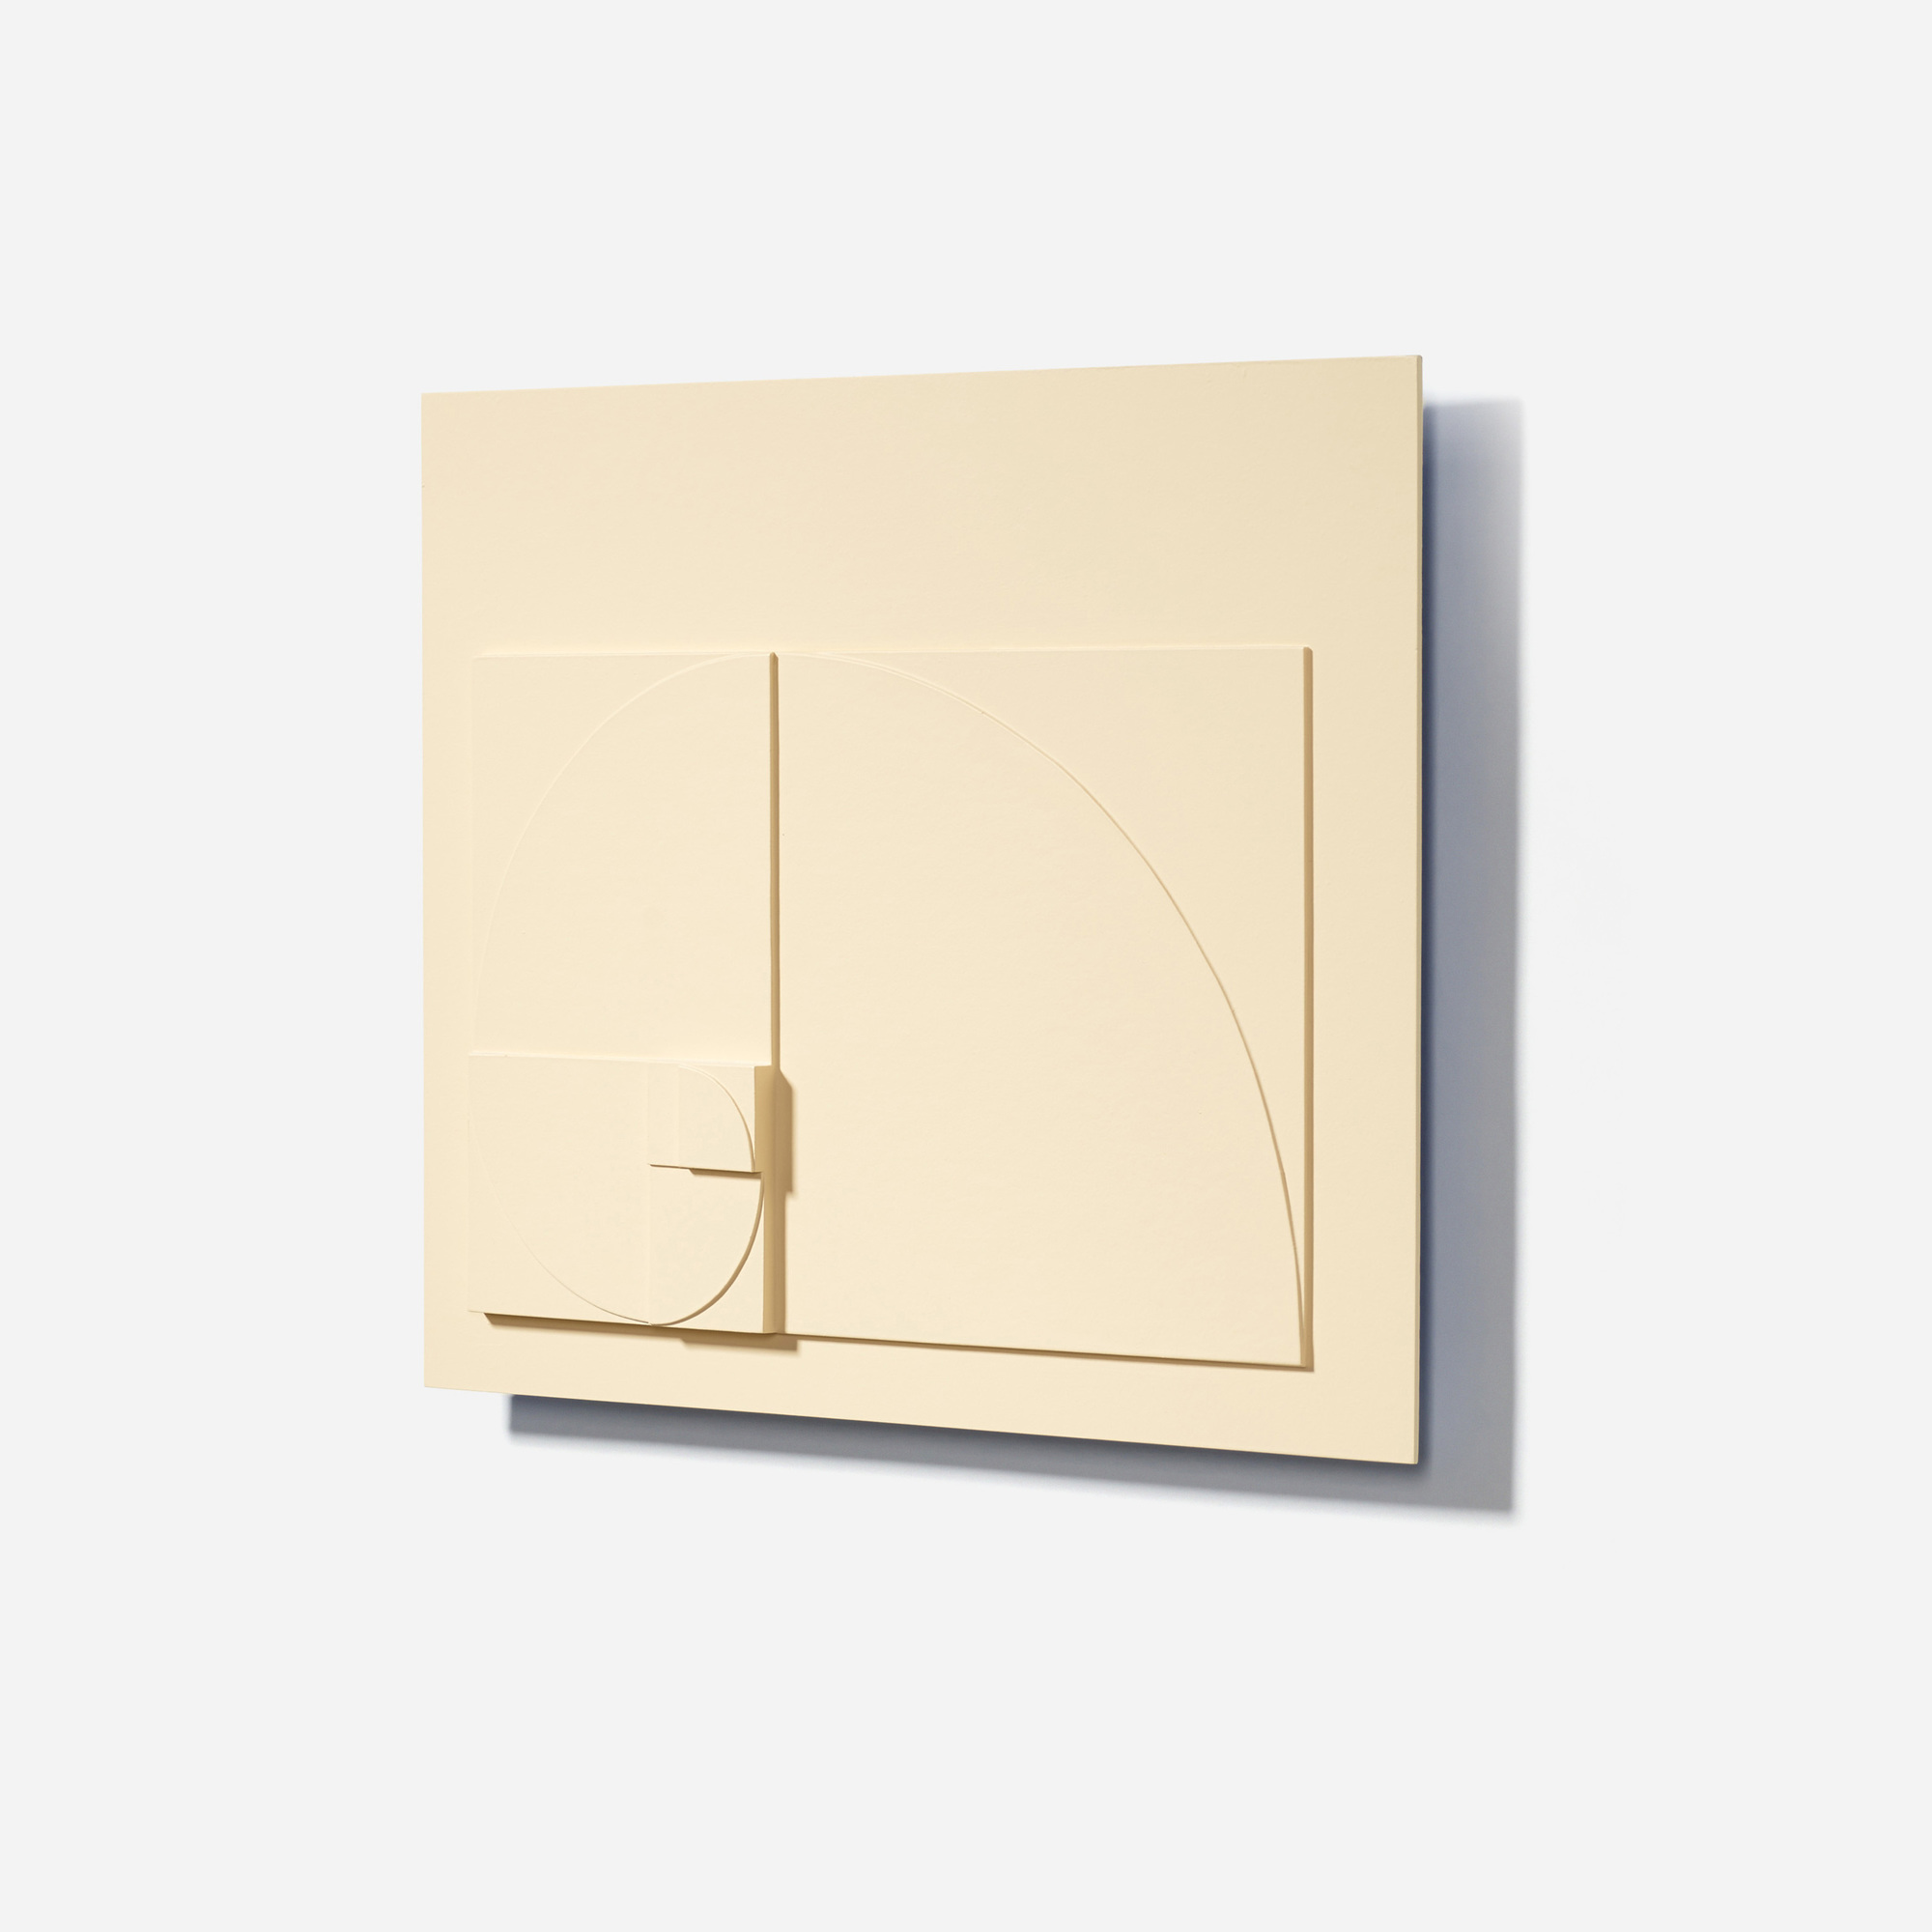 132: David Barr / Structurist Relief No. 344 (Reference to No. 20s) (2 of 3)